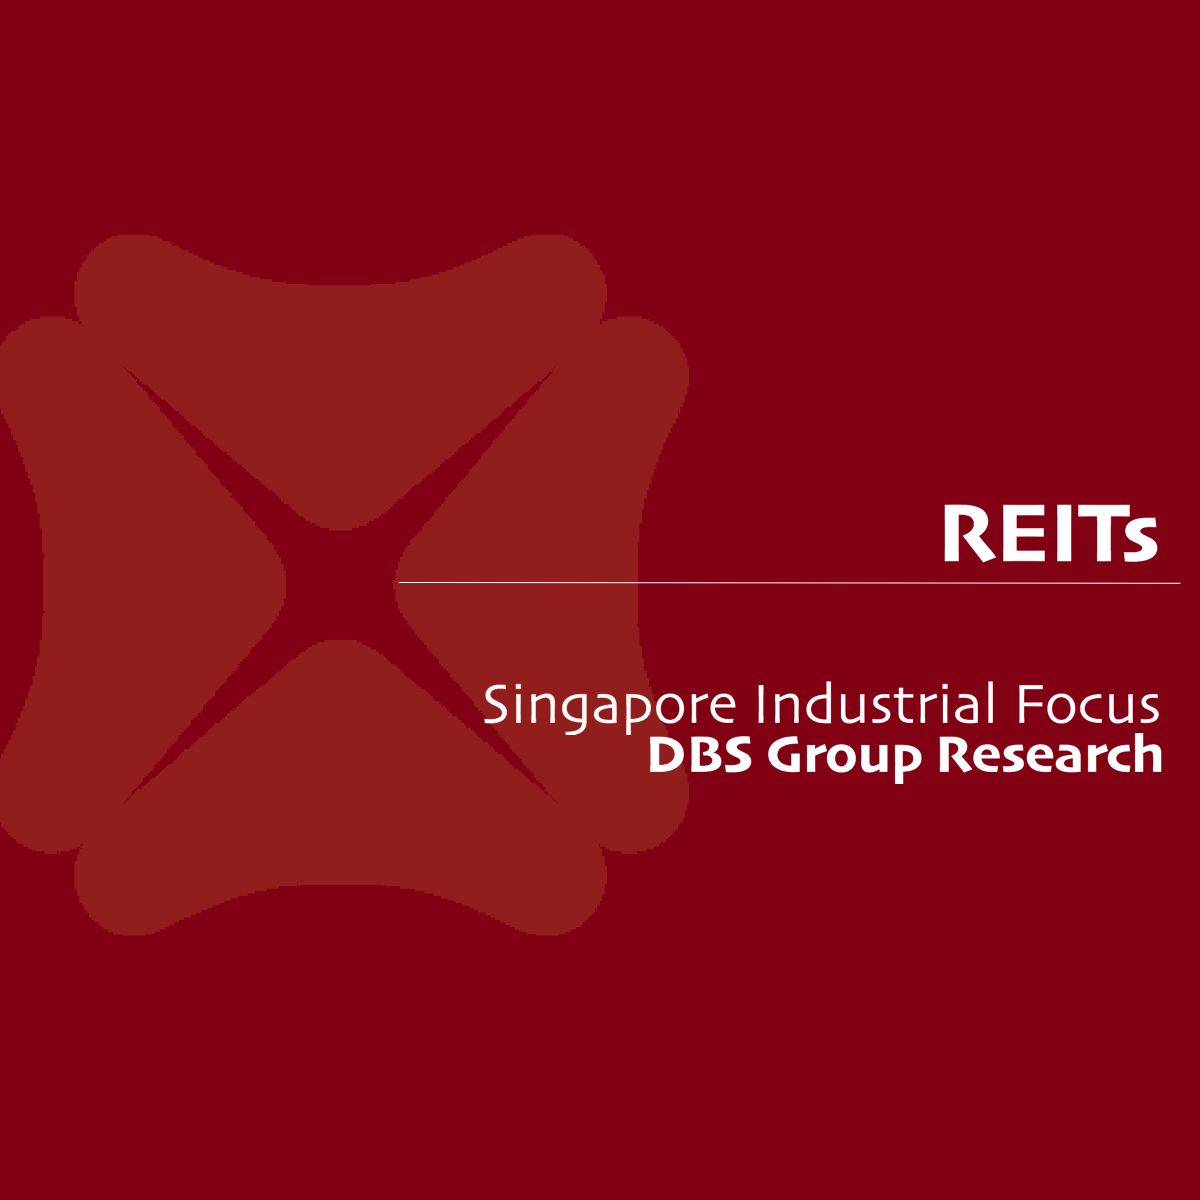 Singapore REITs - DBS Vickers 2018-05-31: Spring Is Here